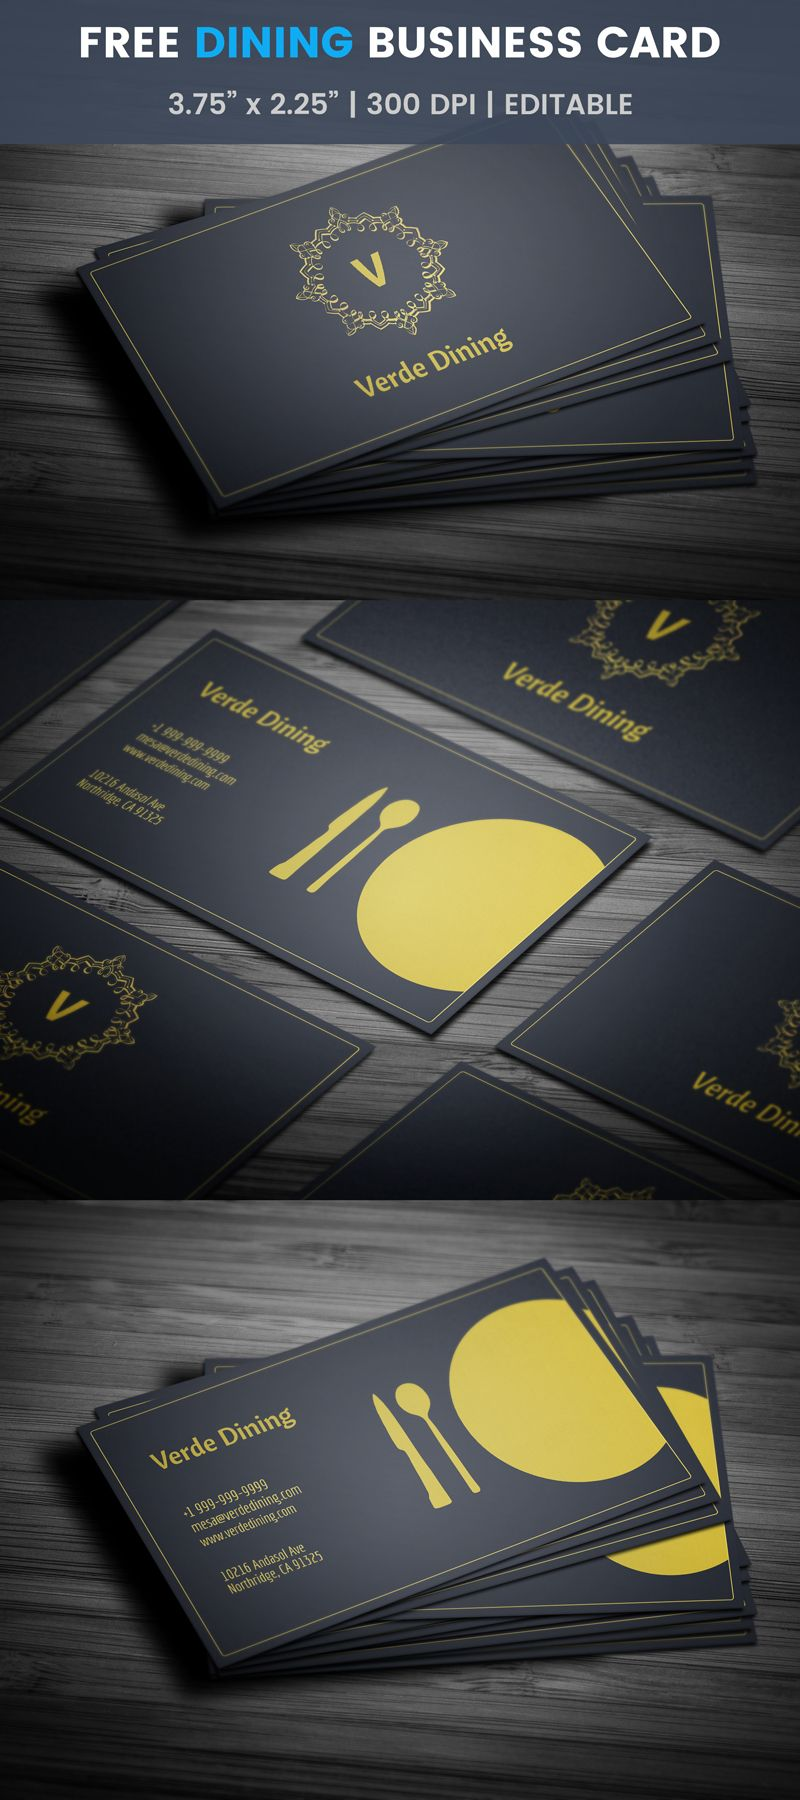 Free free food business card card templates business cards and free artistic restaurant business card template food design dining reheart Gallery